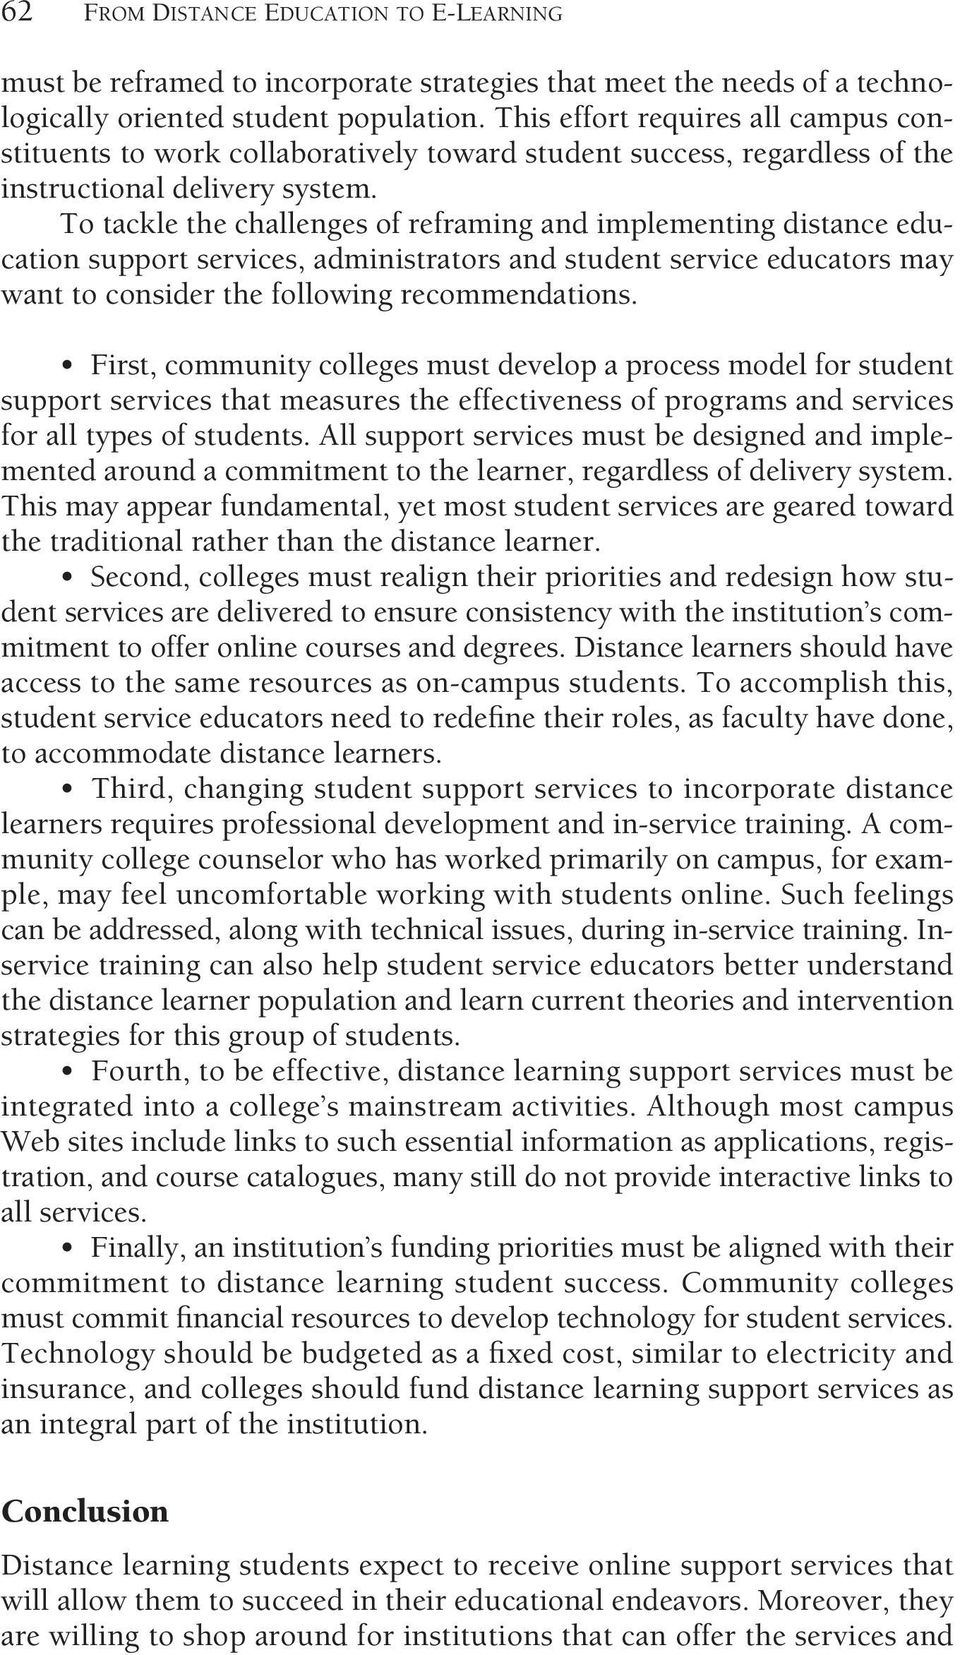 To tackle the challenges of reframing and implementing distance education support services, administrators and student service educators may want to consider the following recommendations.